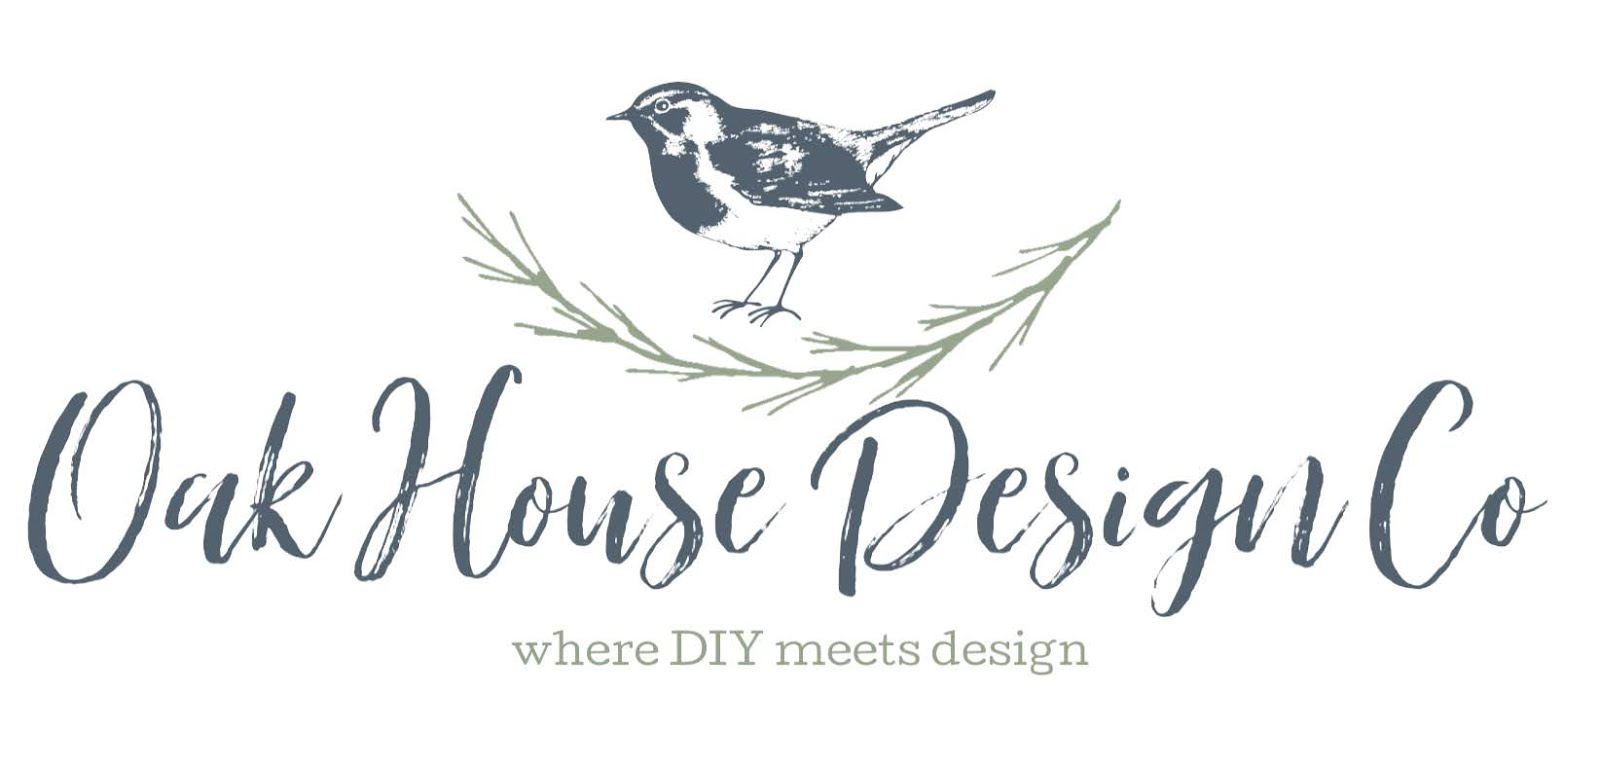 OAK HOUSE DESIGN CO.